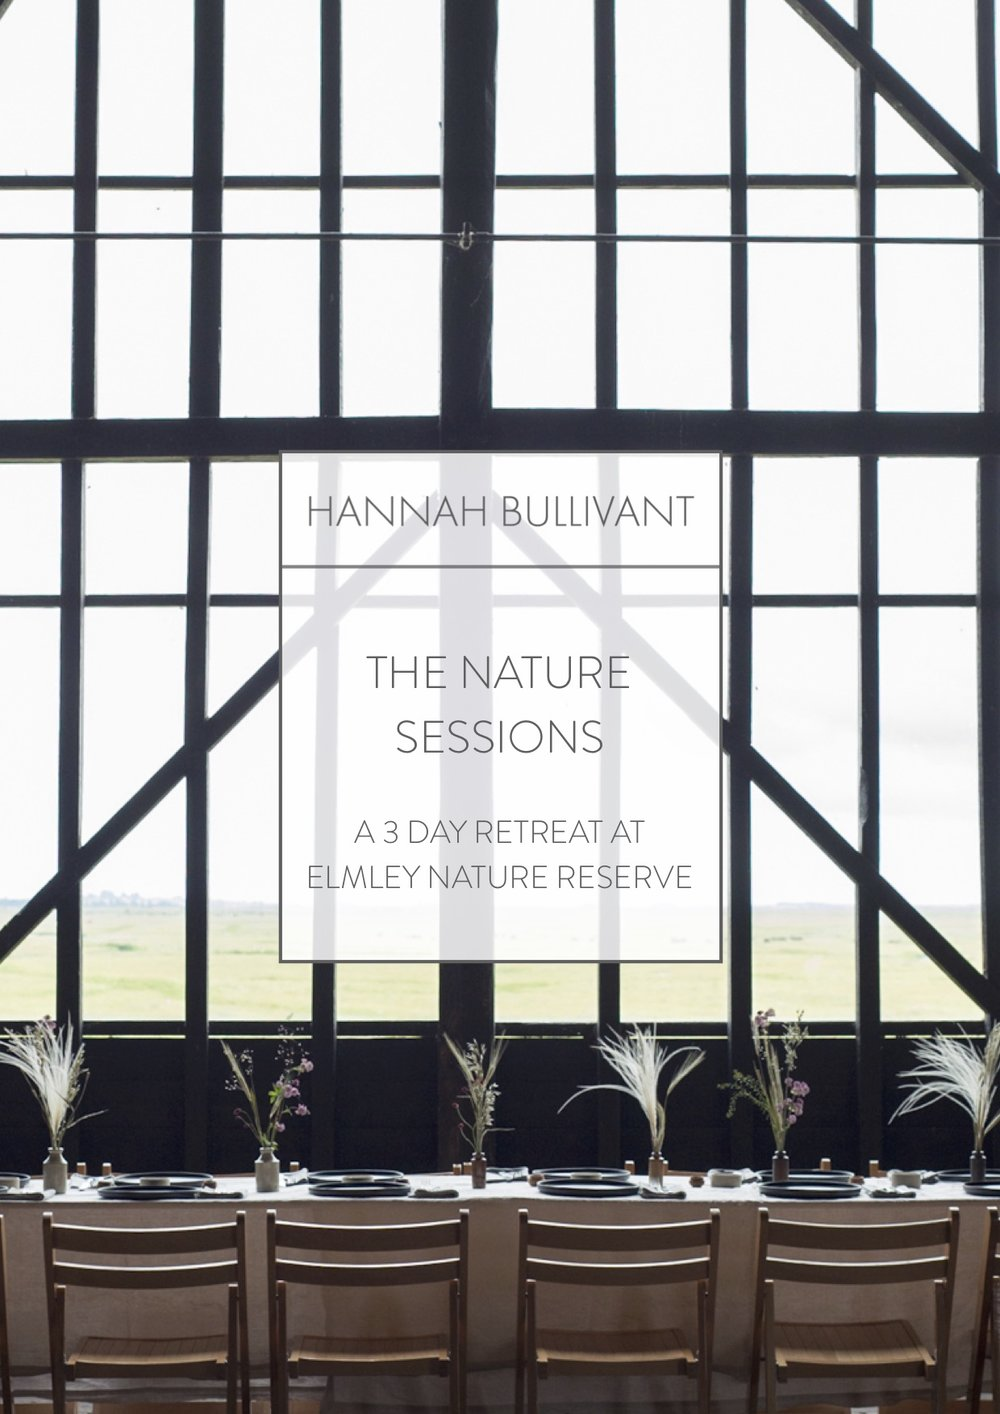 The Nature Sessions Part 2 of 2; a 3 day retreat into nature at Elmley Nature Reserve kent | Hannahbullivant.com